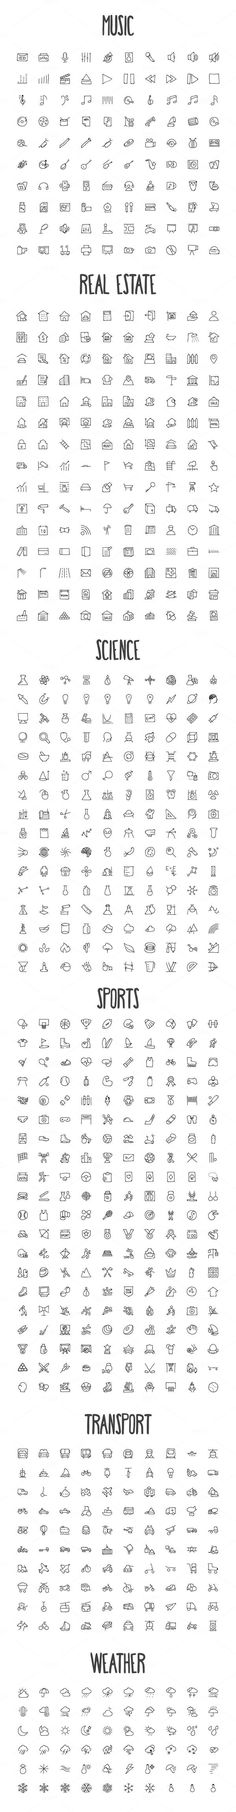 2440 Hand Drawn Doodle Icons Bundle by creativestall on Crea.- 2440 Hand Drawn Doodle Icons Bundle by creativestall on Creative Market - Doodle Drawings, Doodle Art, Doodle Frames, Music Doodle, Doodle Tattoo, Small Drawings, Tattoo Drawings, Doodle Icon, Bullet Journal Inspiration